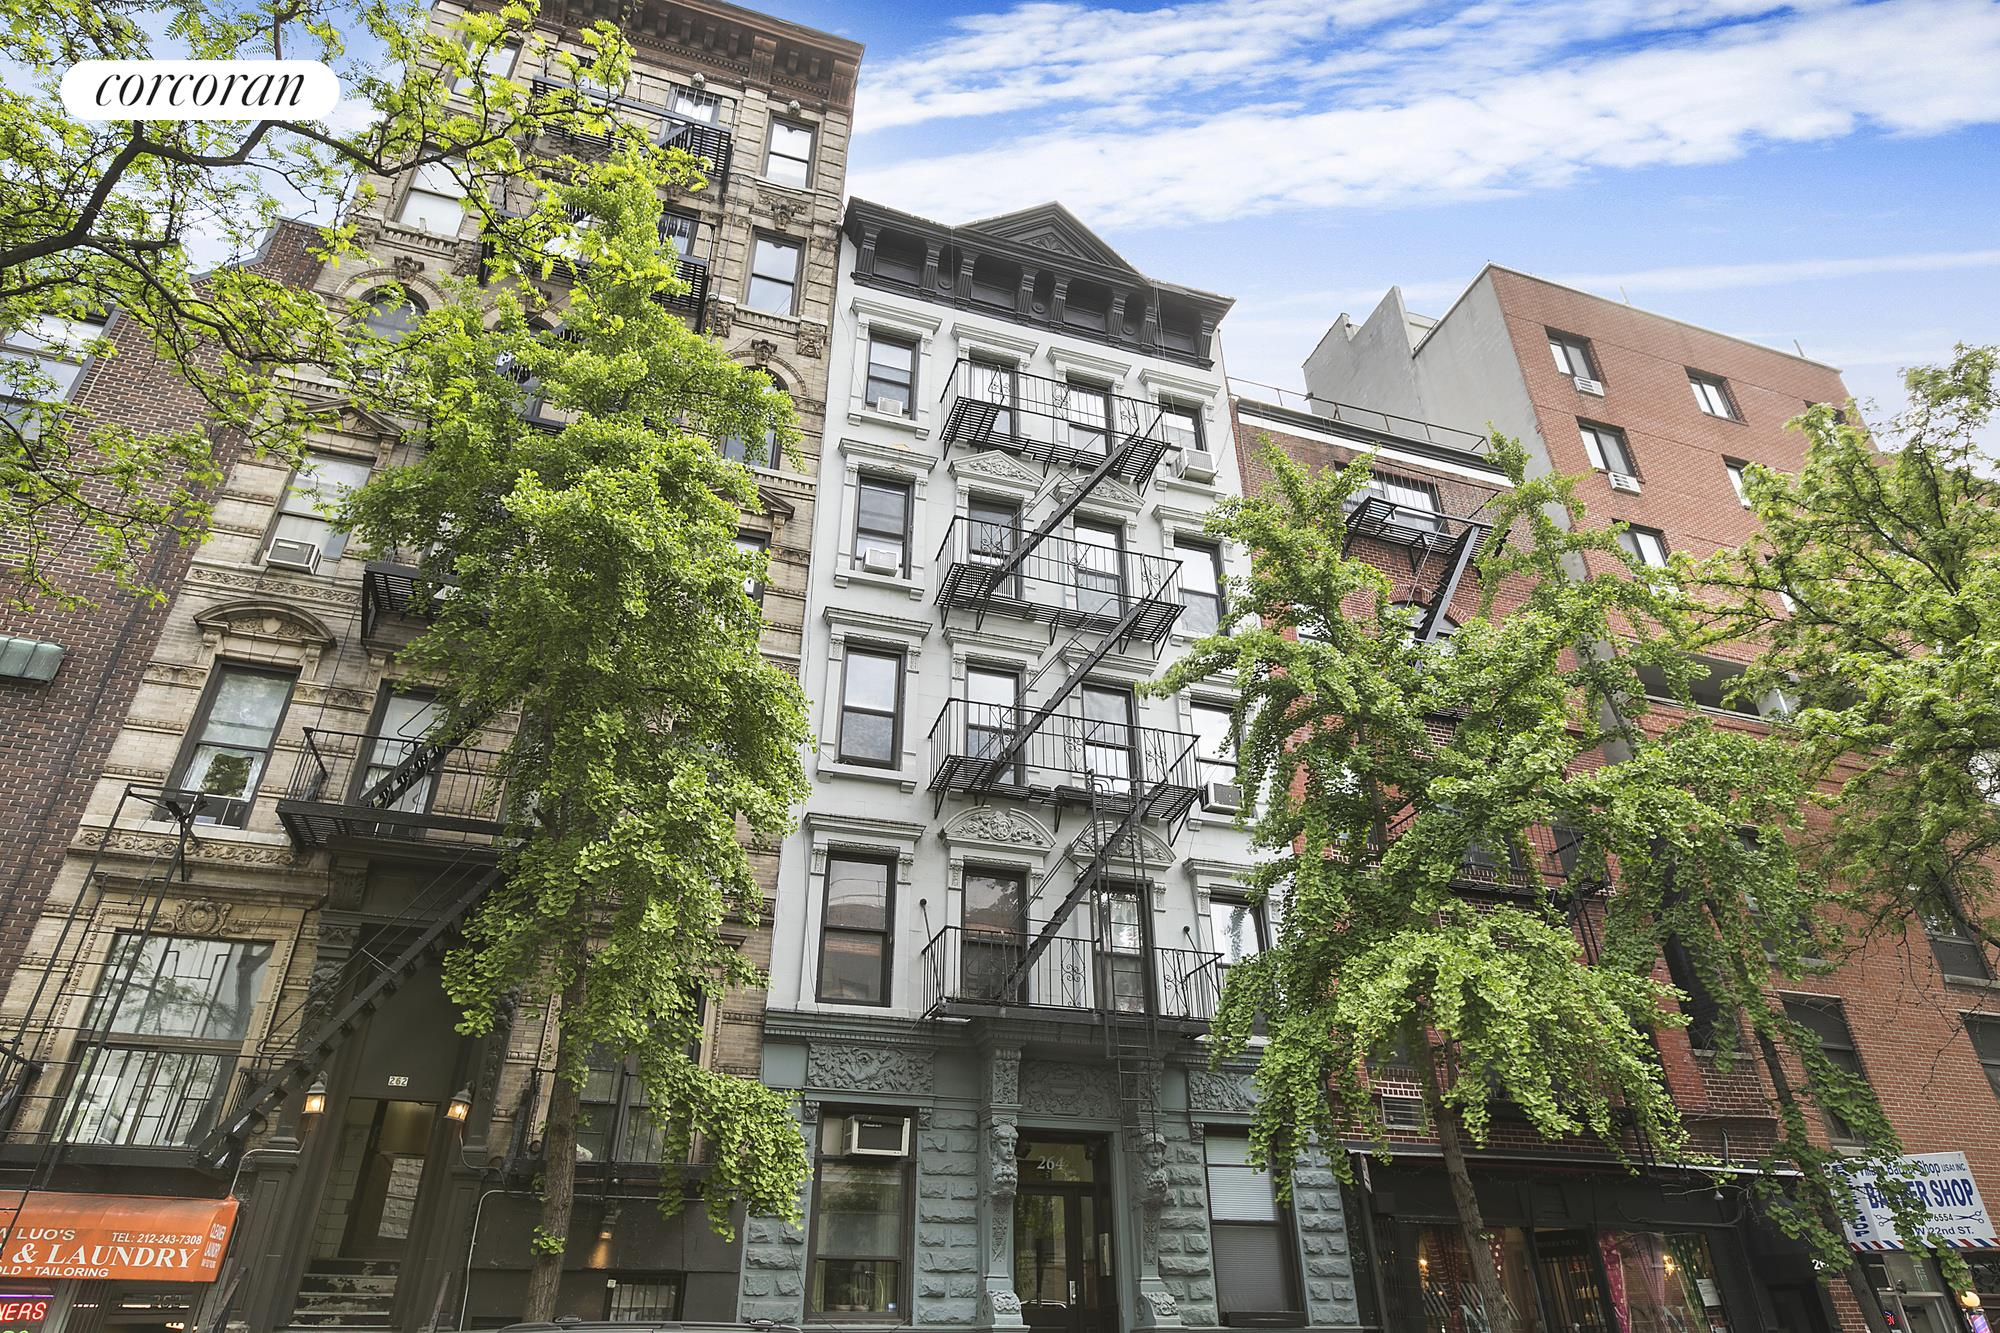 Corcoran 264 west 22nd street apt 10 chelsea hudson for Chelsea nyc apartments for sale